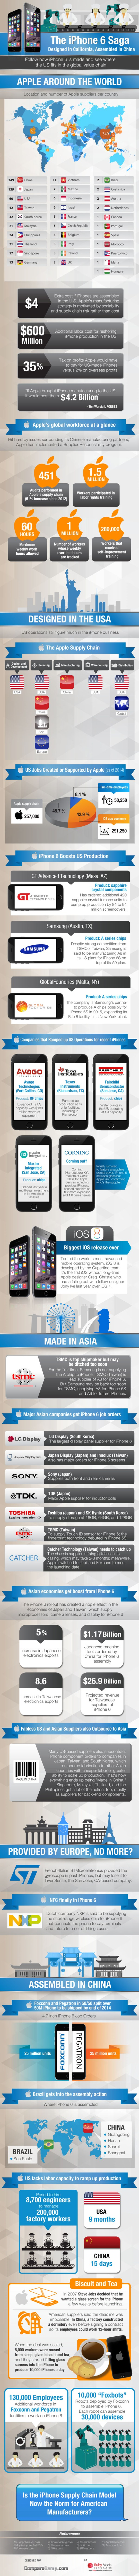 How iPhone Is Made: Comparison Of Apple's Manufacturing Process